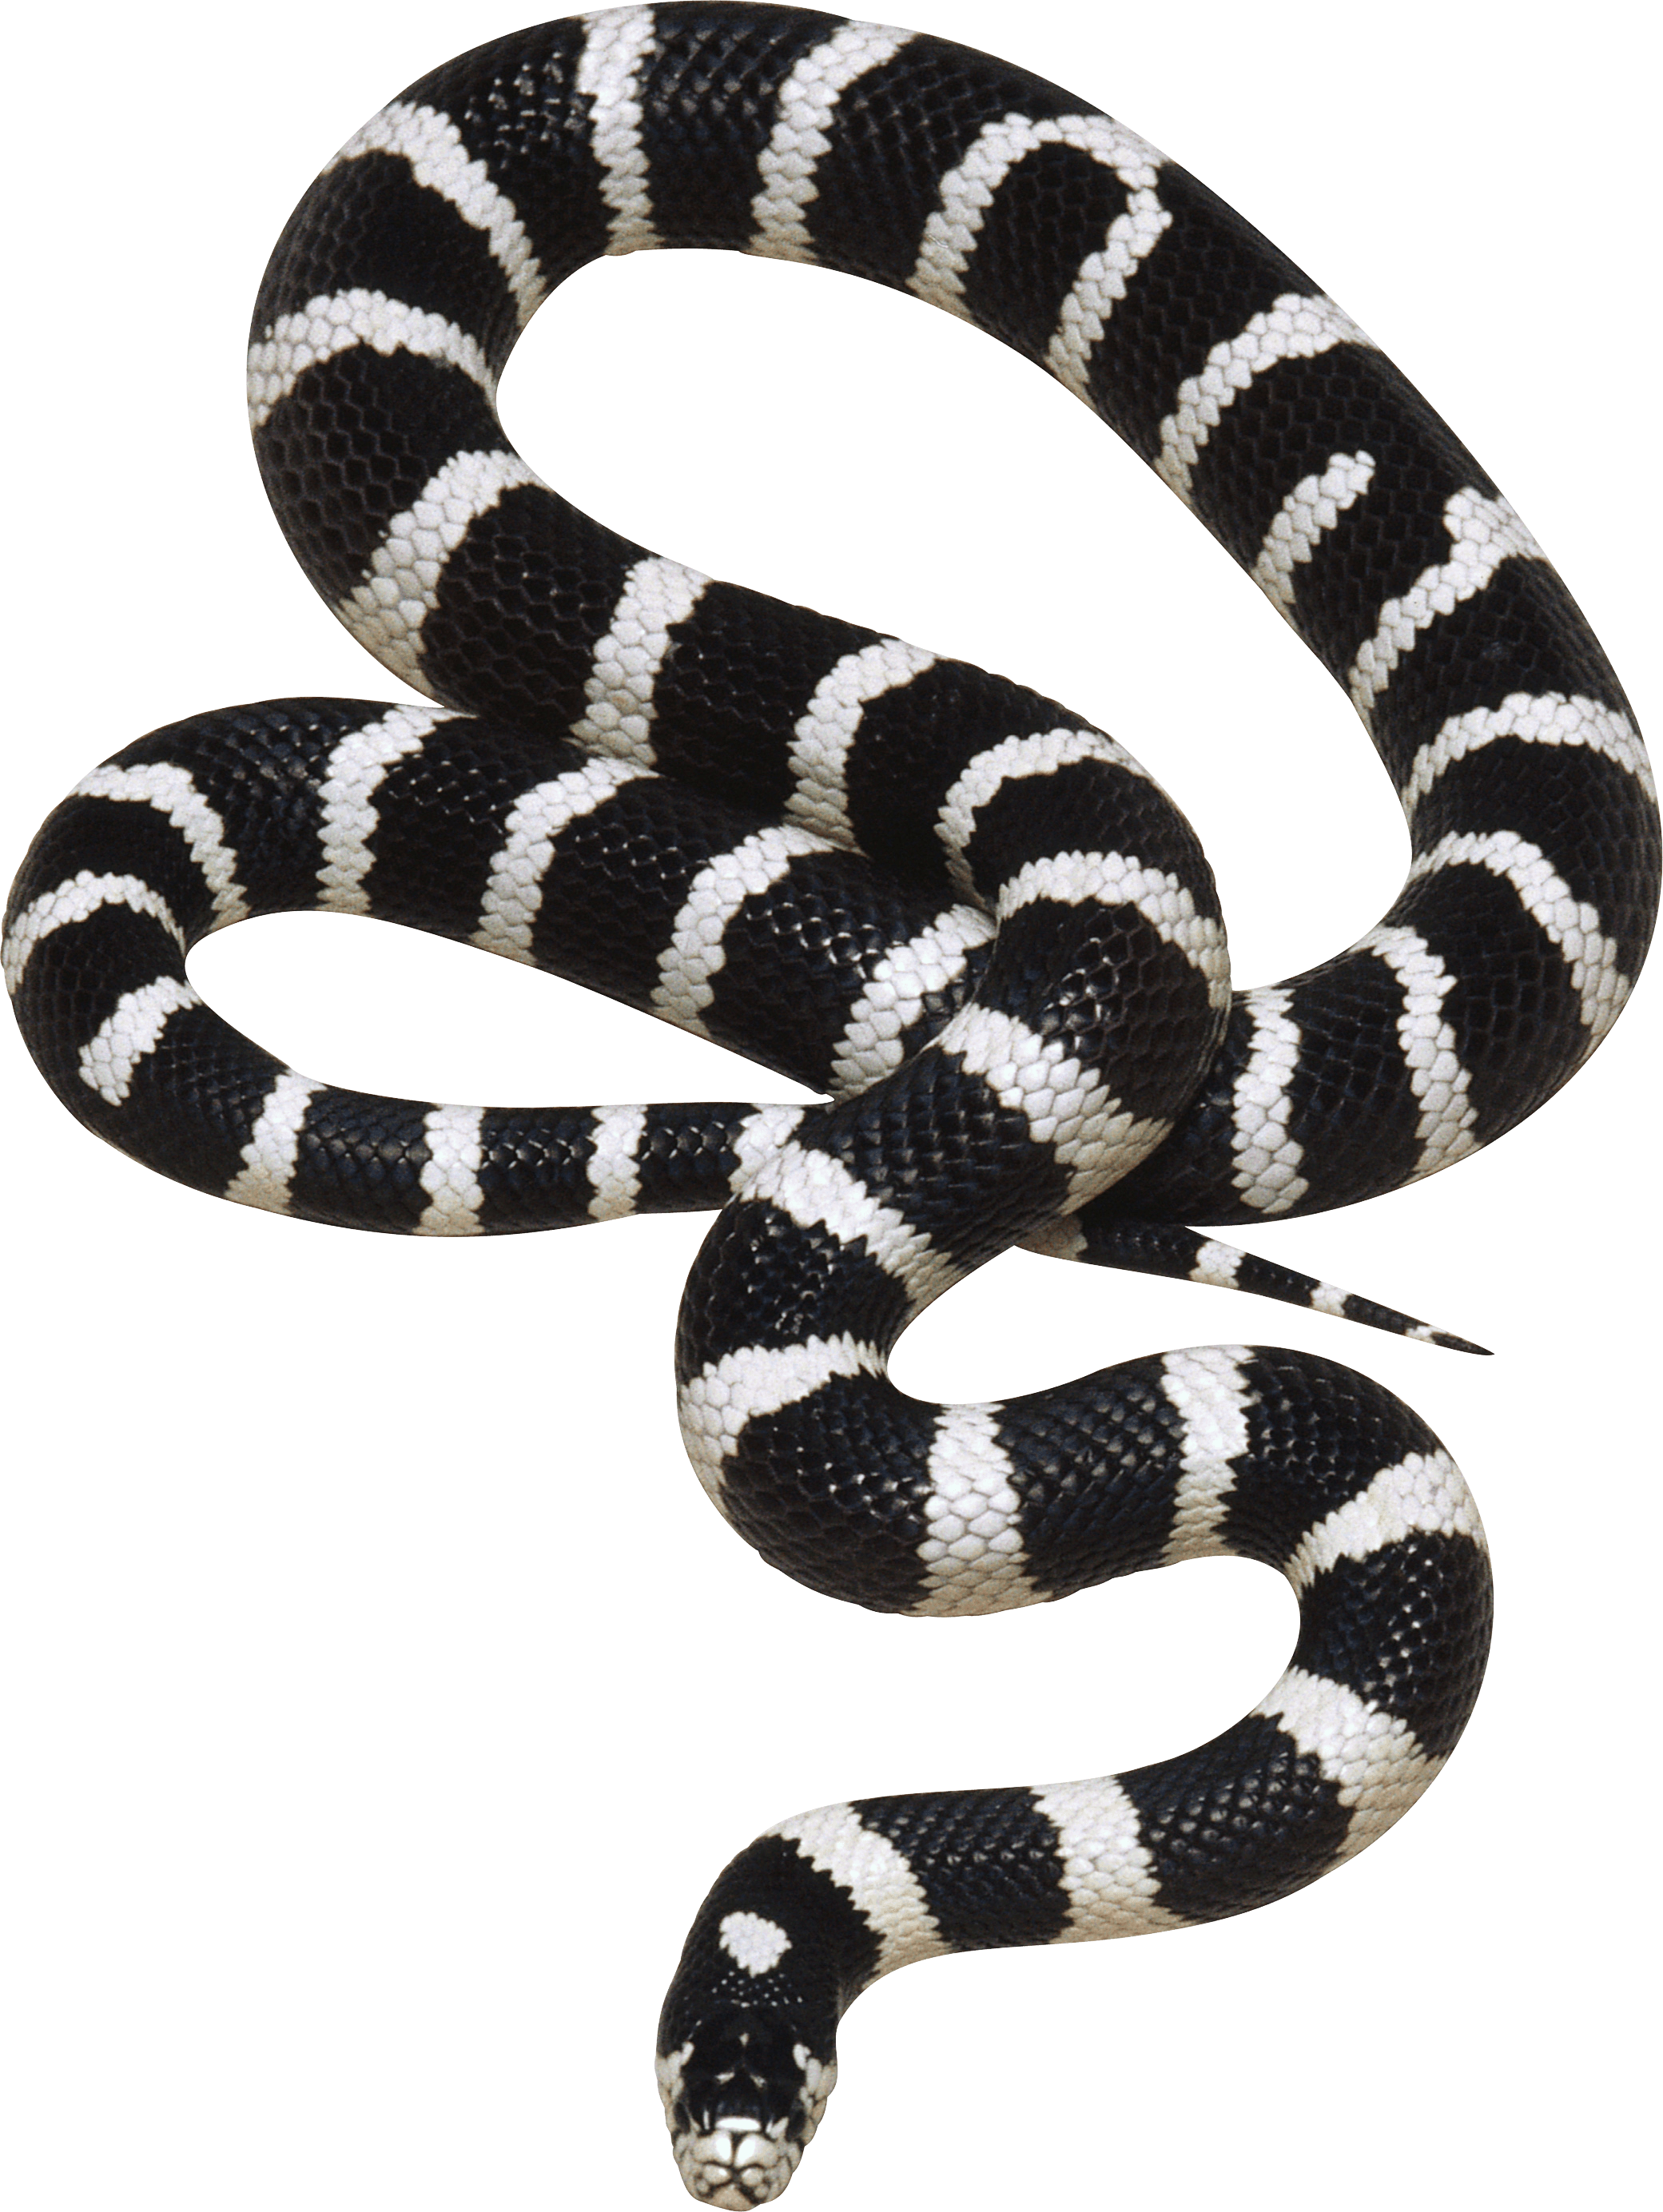 Snake clipart king snake. Black and white png